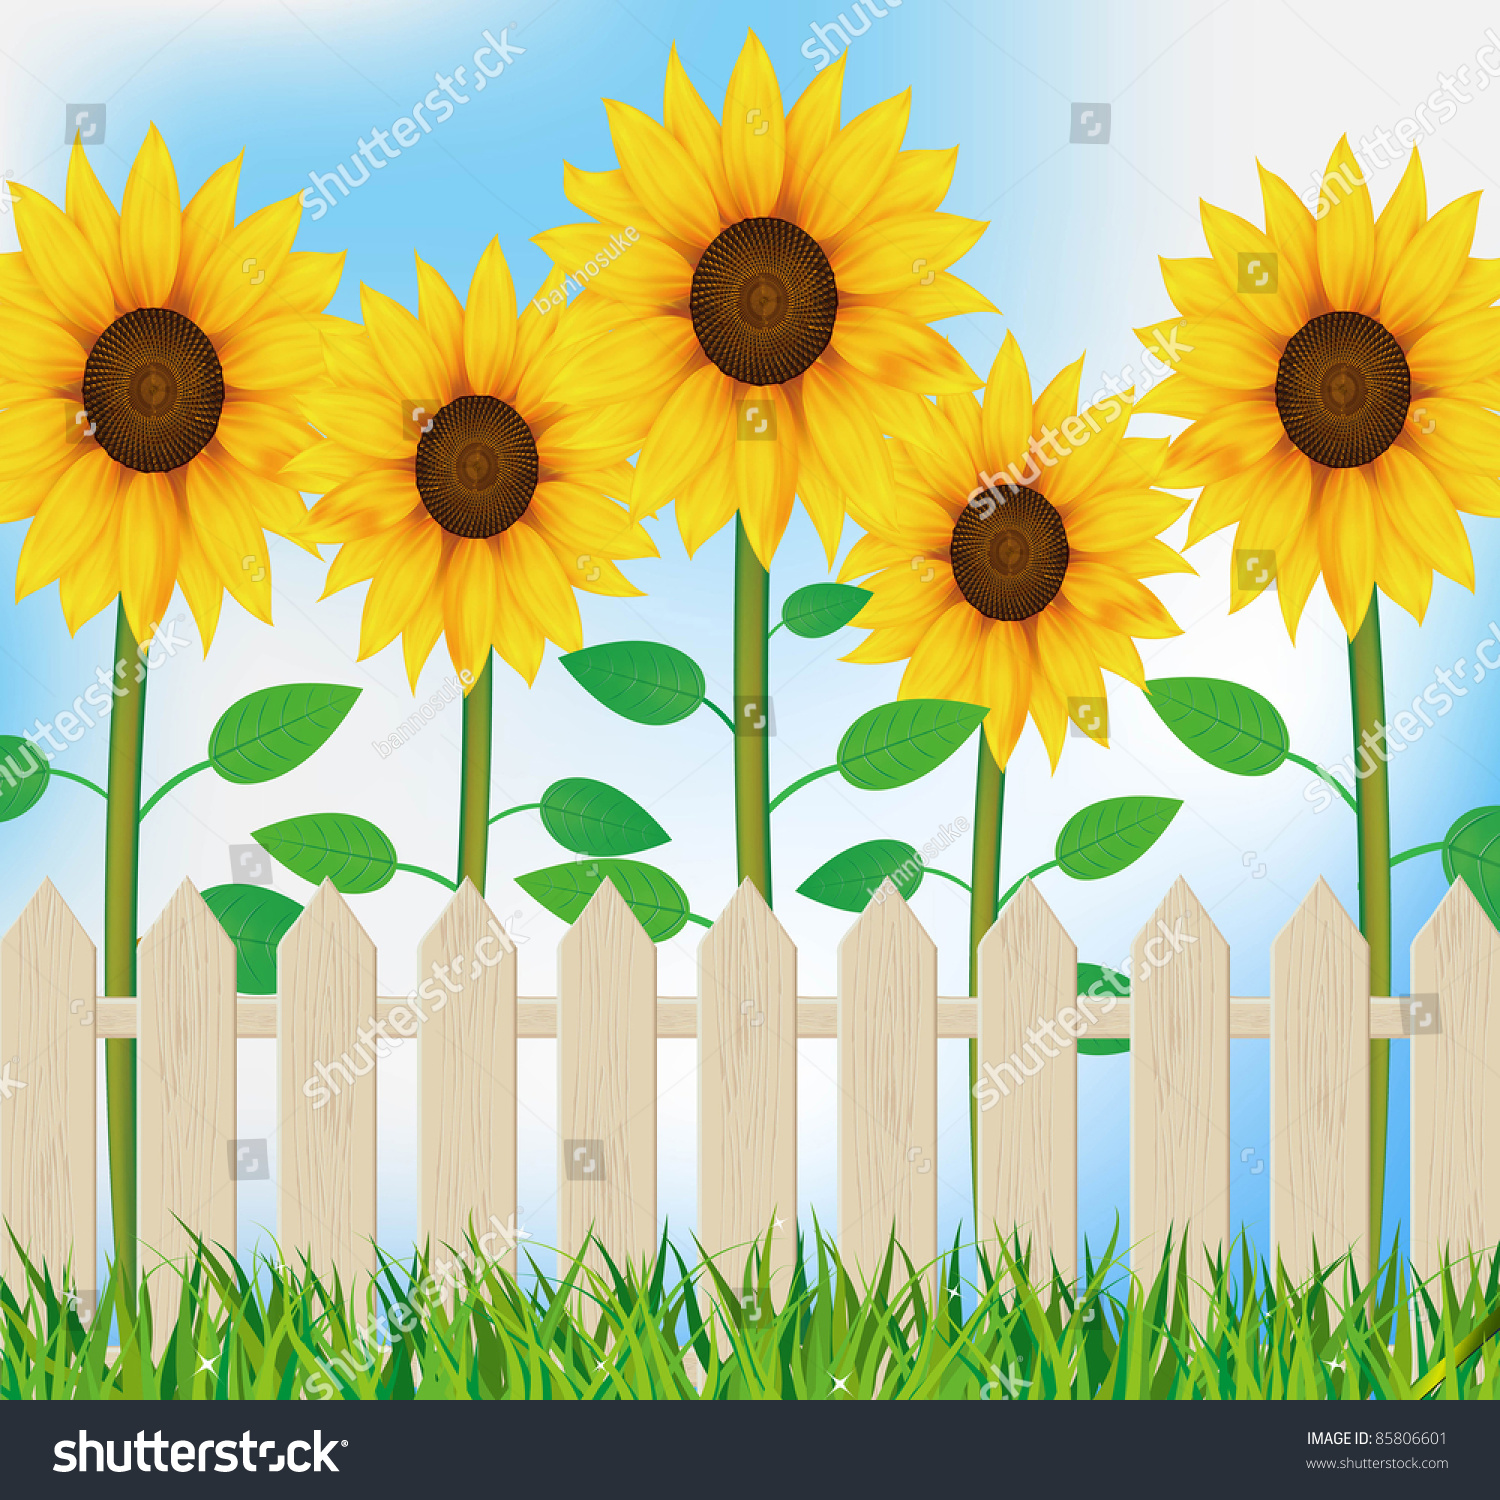 Fall Sunflowers Wallpaper Illustration Sunflower Garden Fence Stock Illustration